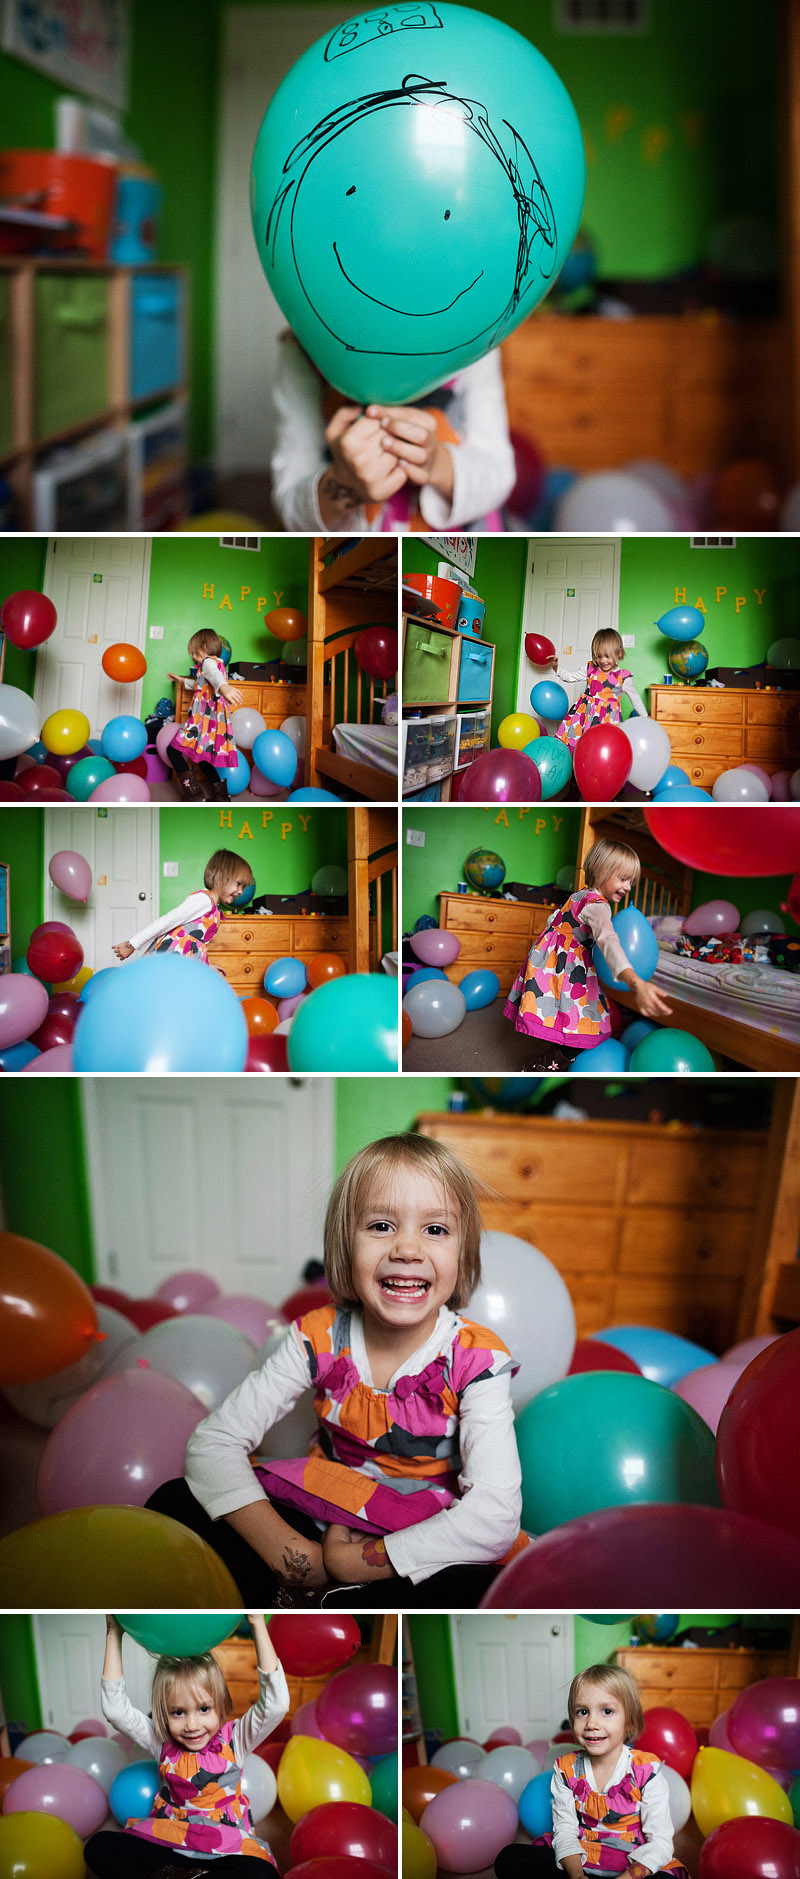 Lots and lots of balloons in my daughter